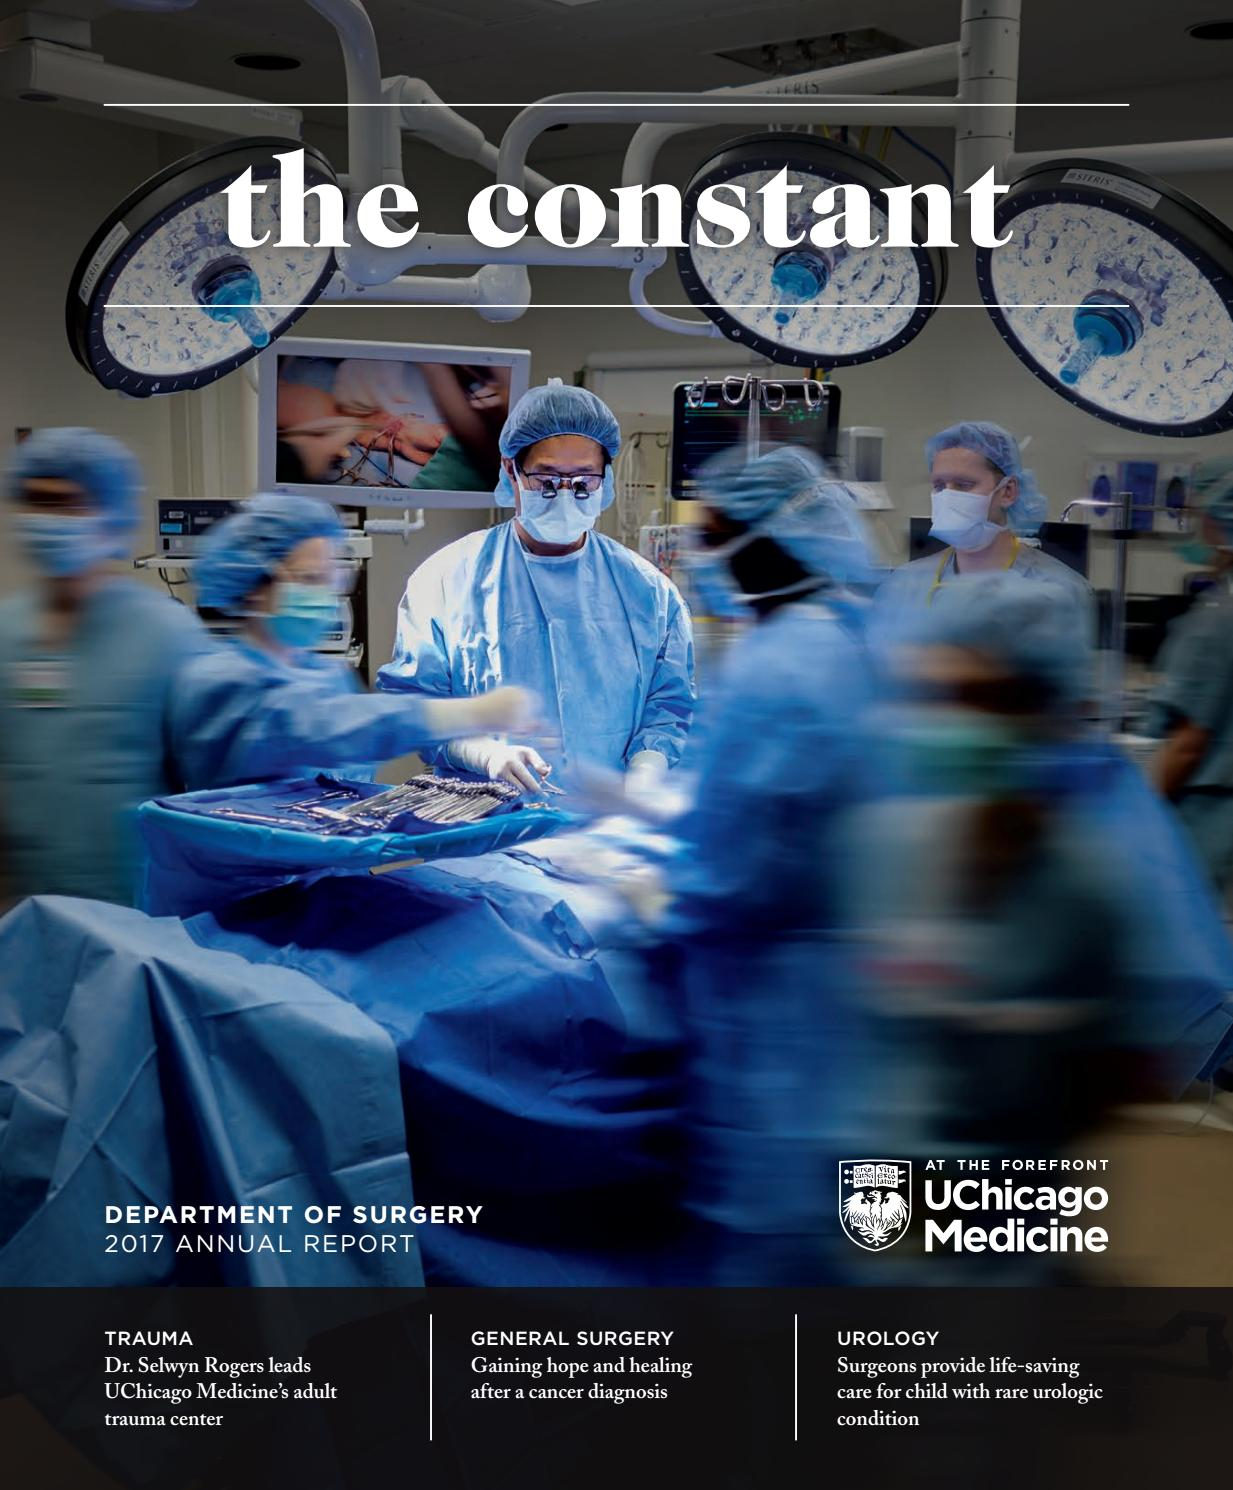 UChicago Medicine 2017 Department of Surgery Annual Report by